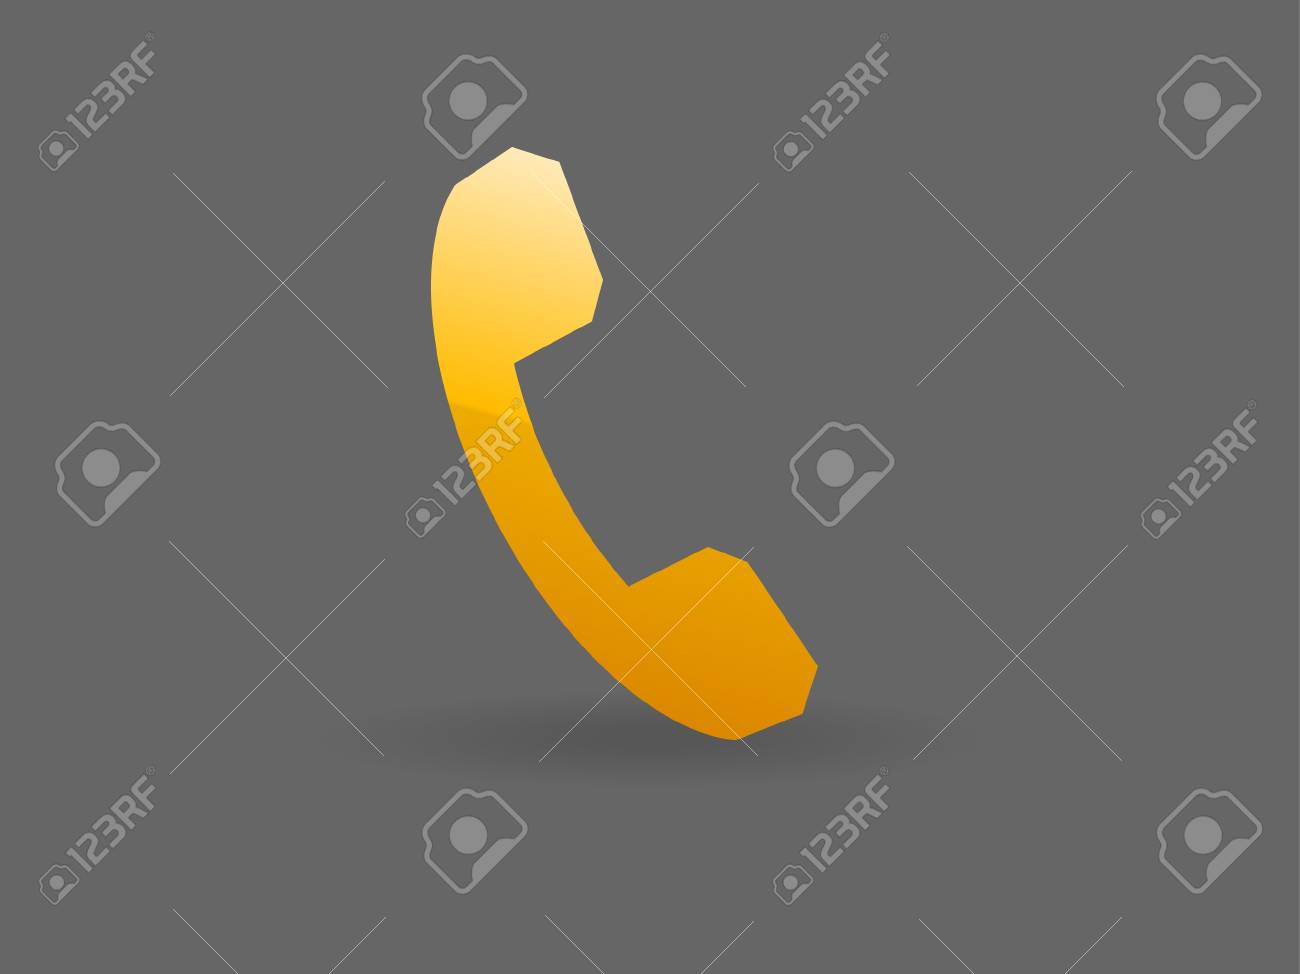 Flat icon of a phone Stock Vector - 29186593